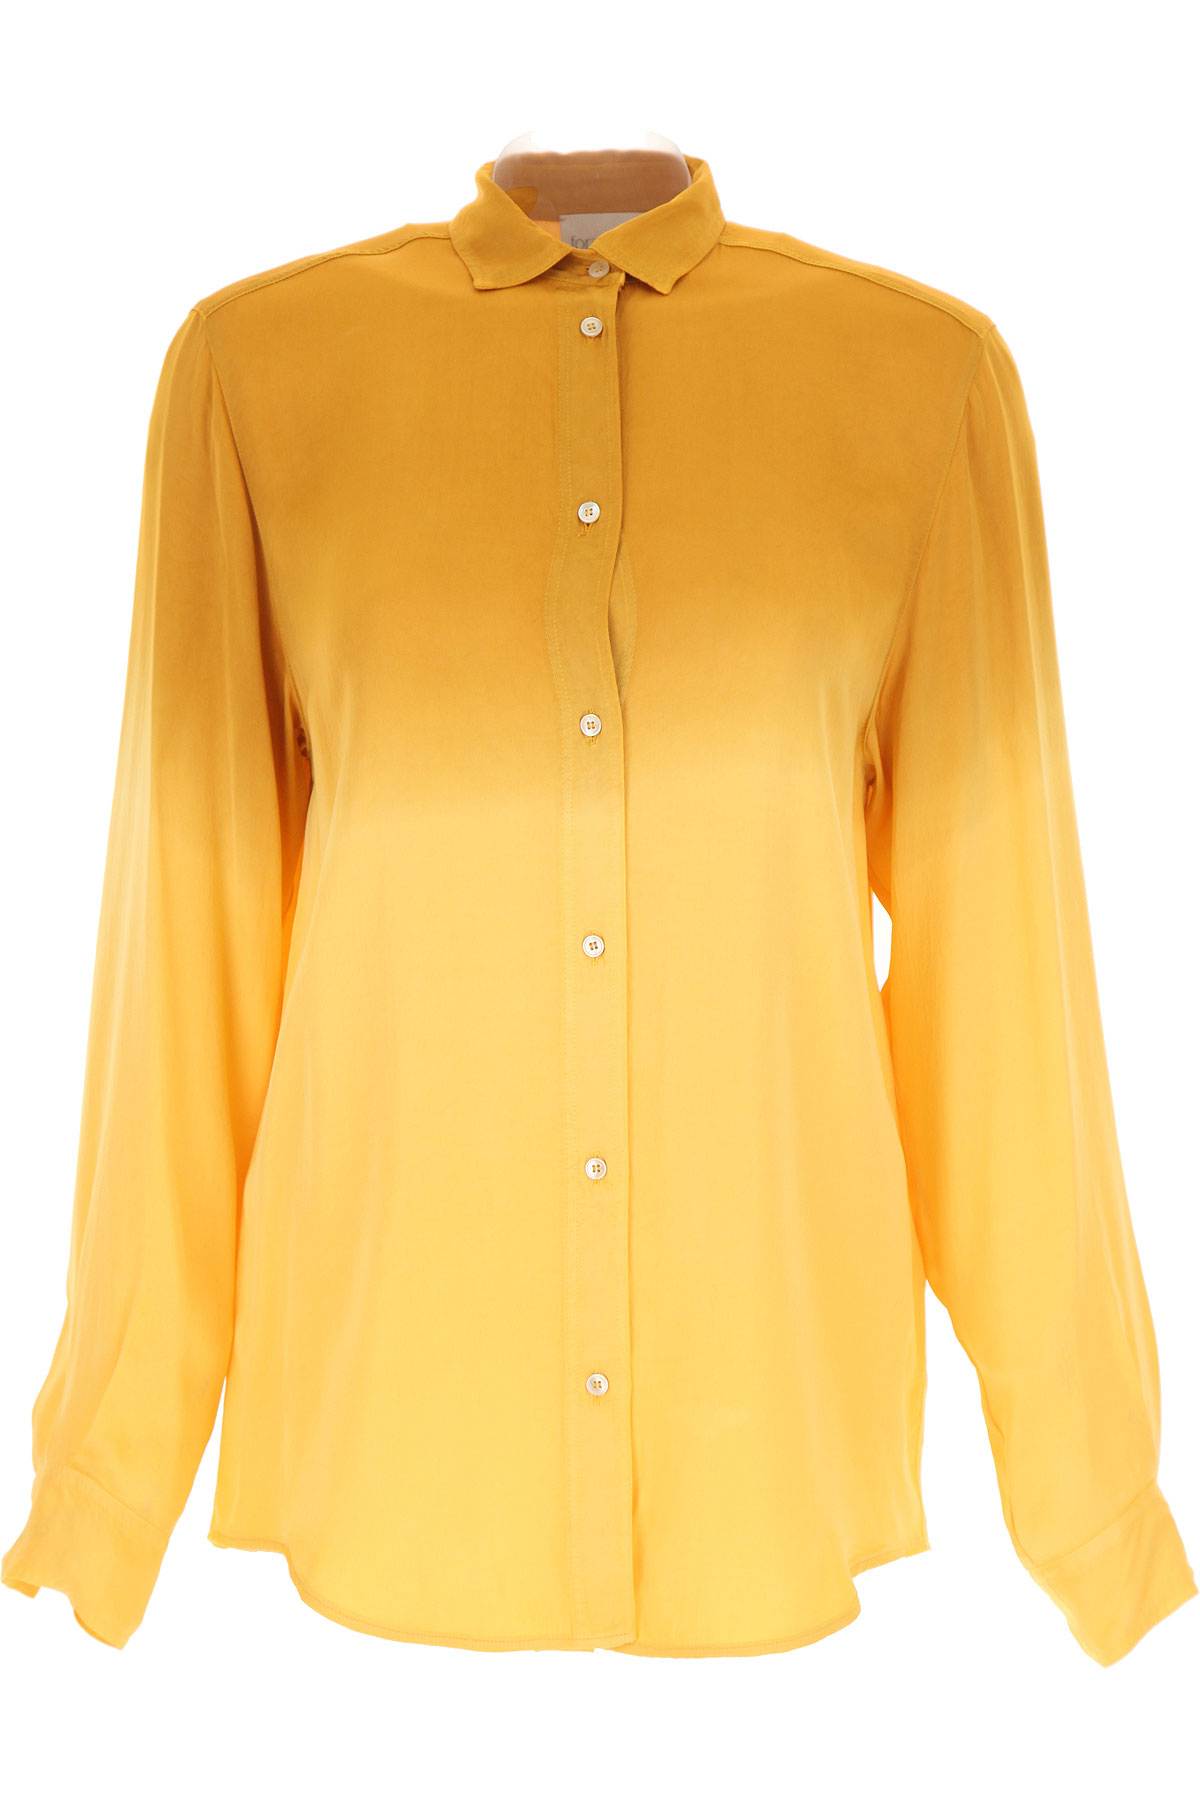 Forte Forte Top for Women On Sale, Gold, Viscose, 2019, 1 - S - IT 40 2 - M - IT 42